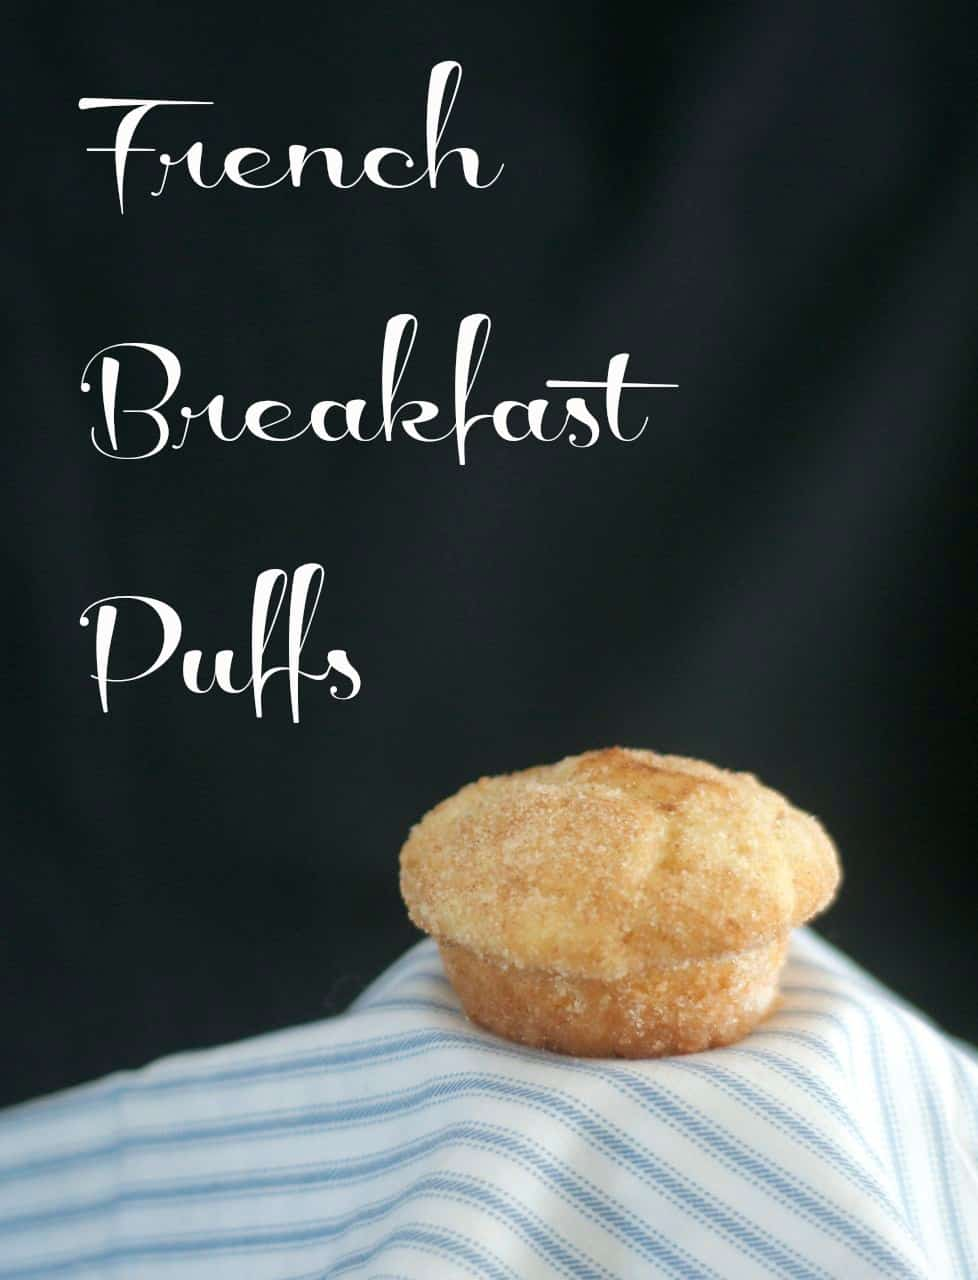 These French Breakfast Puffs are delicious breakfast muffin made extra-special after baking when they're dipped in butter and coated in cinnamon sugar.